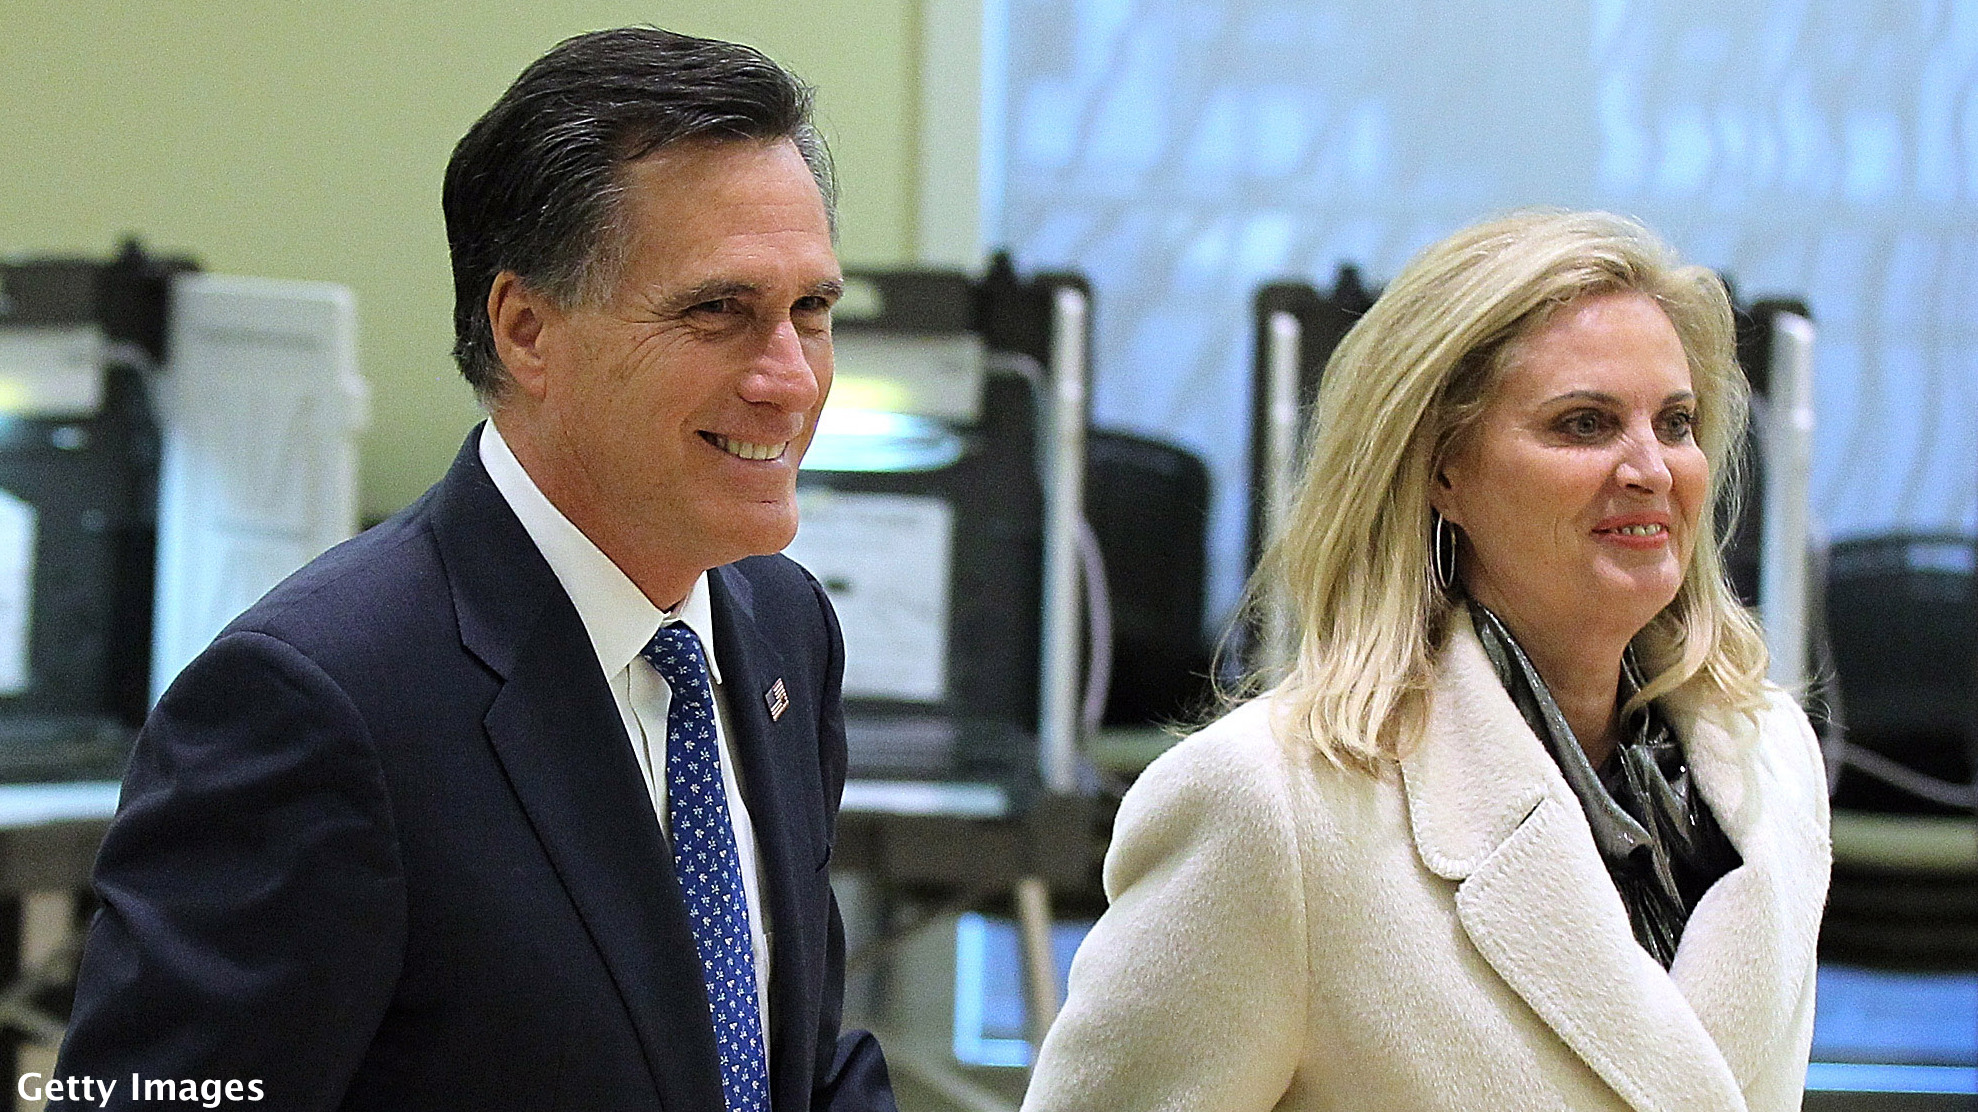 BREAKING: Romney wins Massachusetts primary, CNN projects